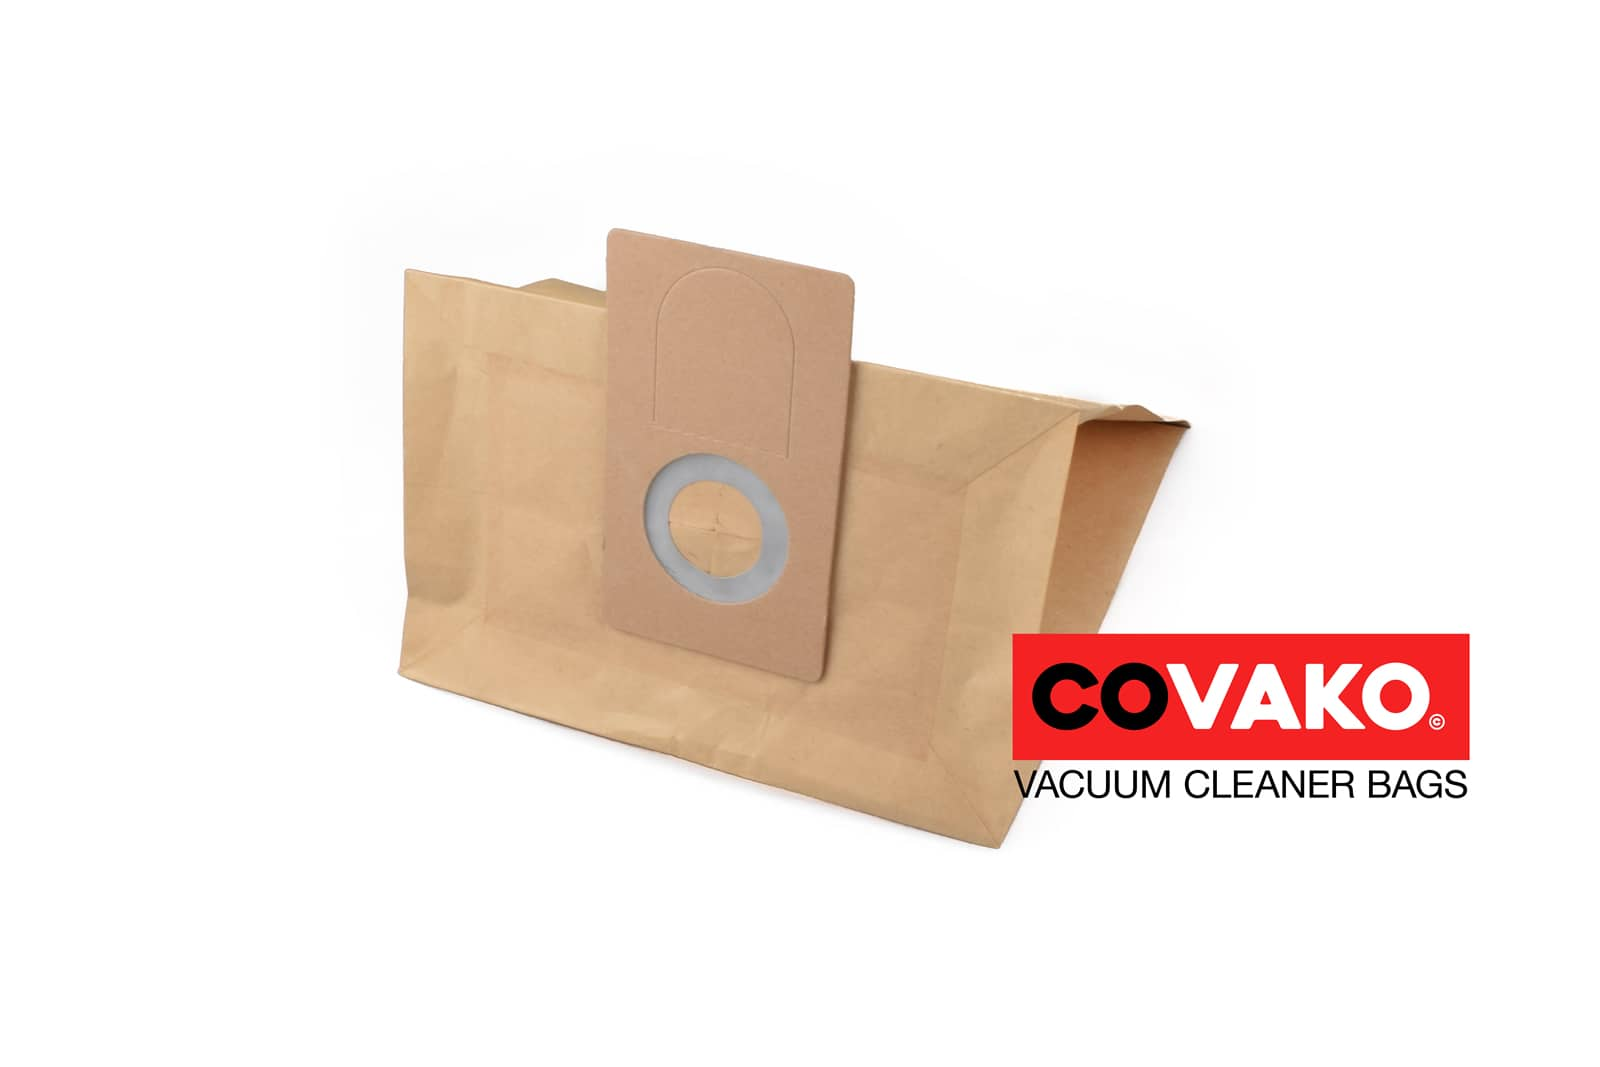 Oehme Otto Major / Paper - Oehme Otto vacuum cleaner bags